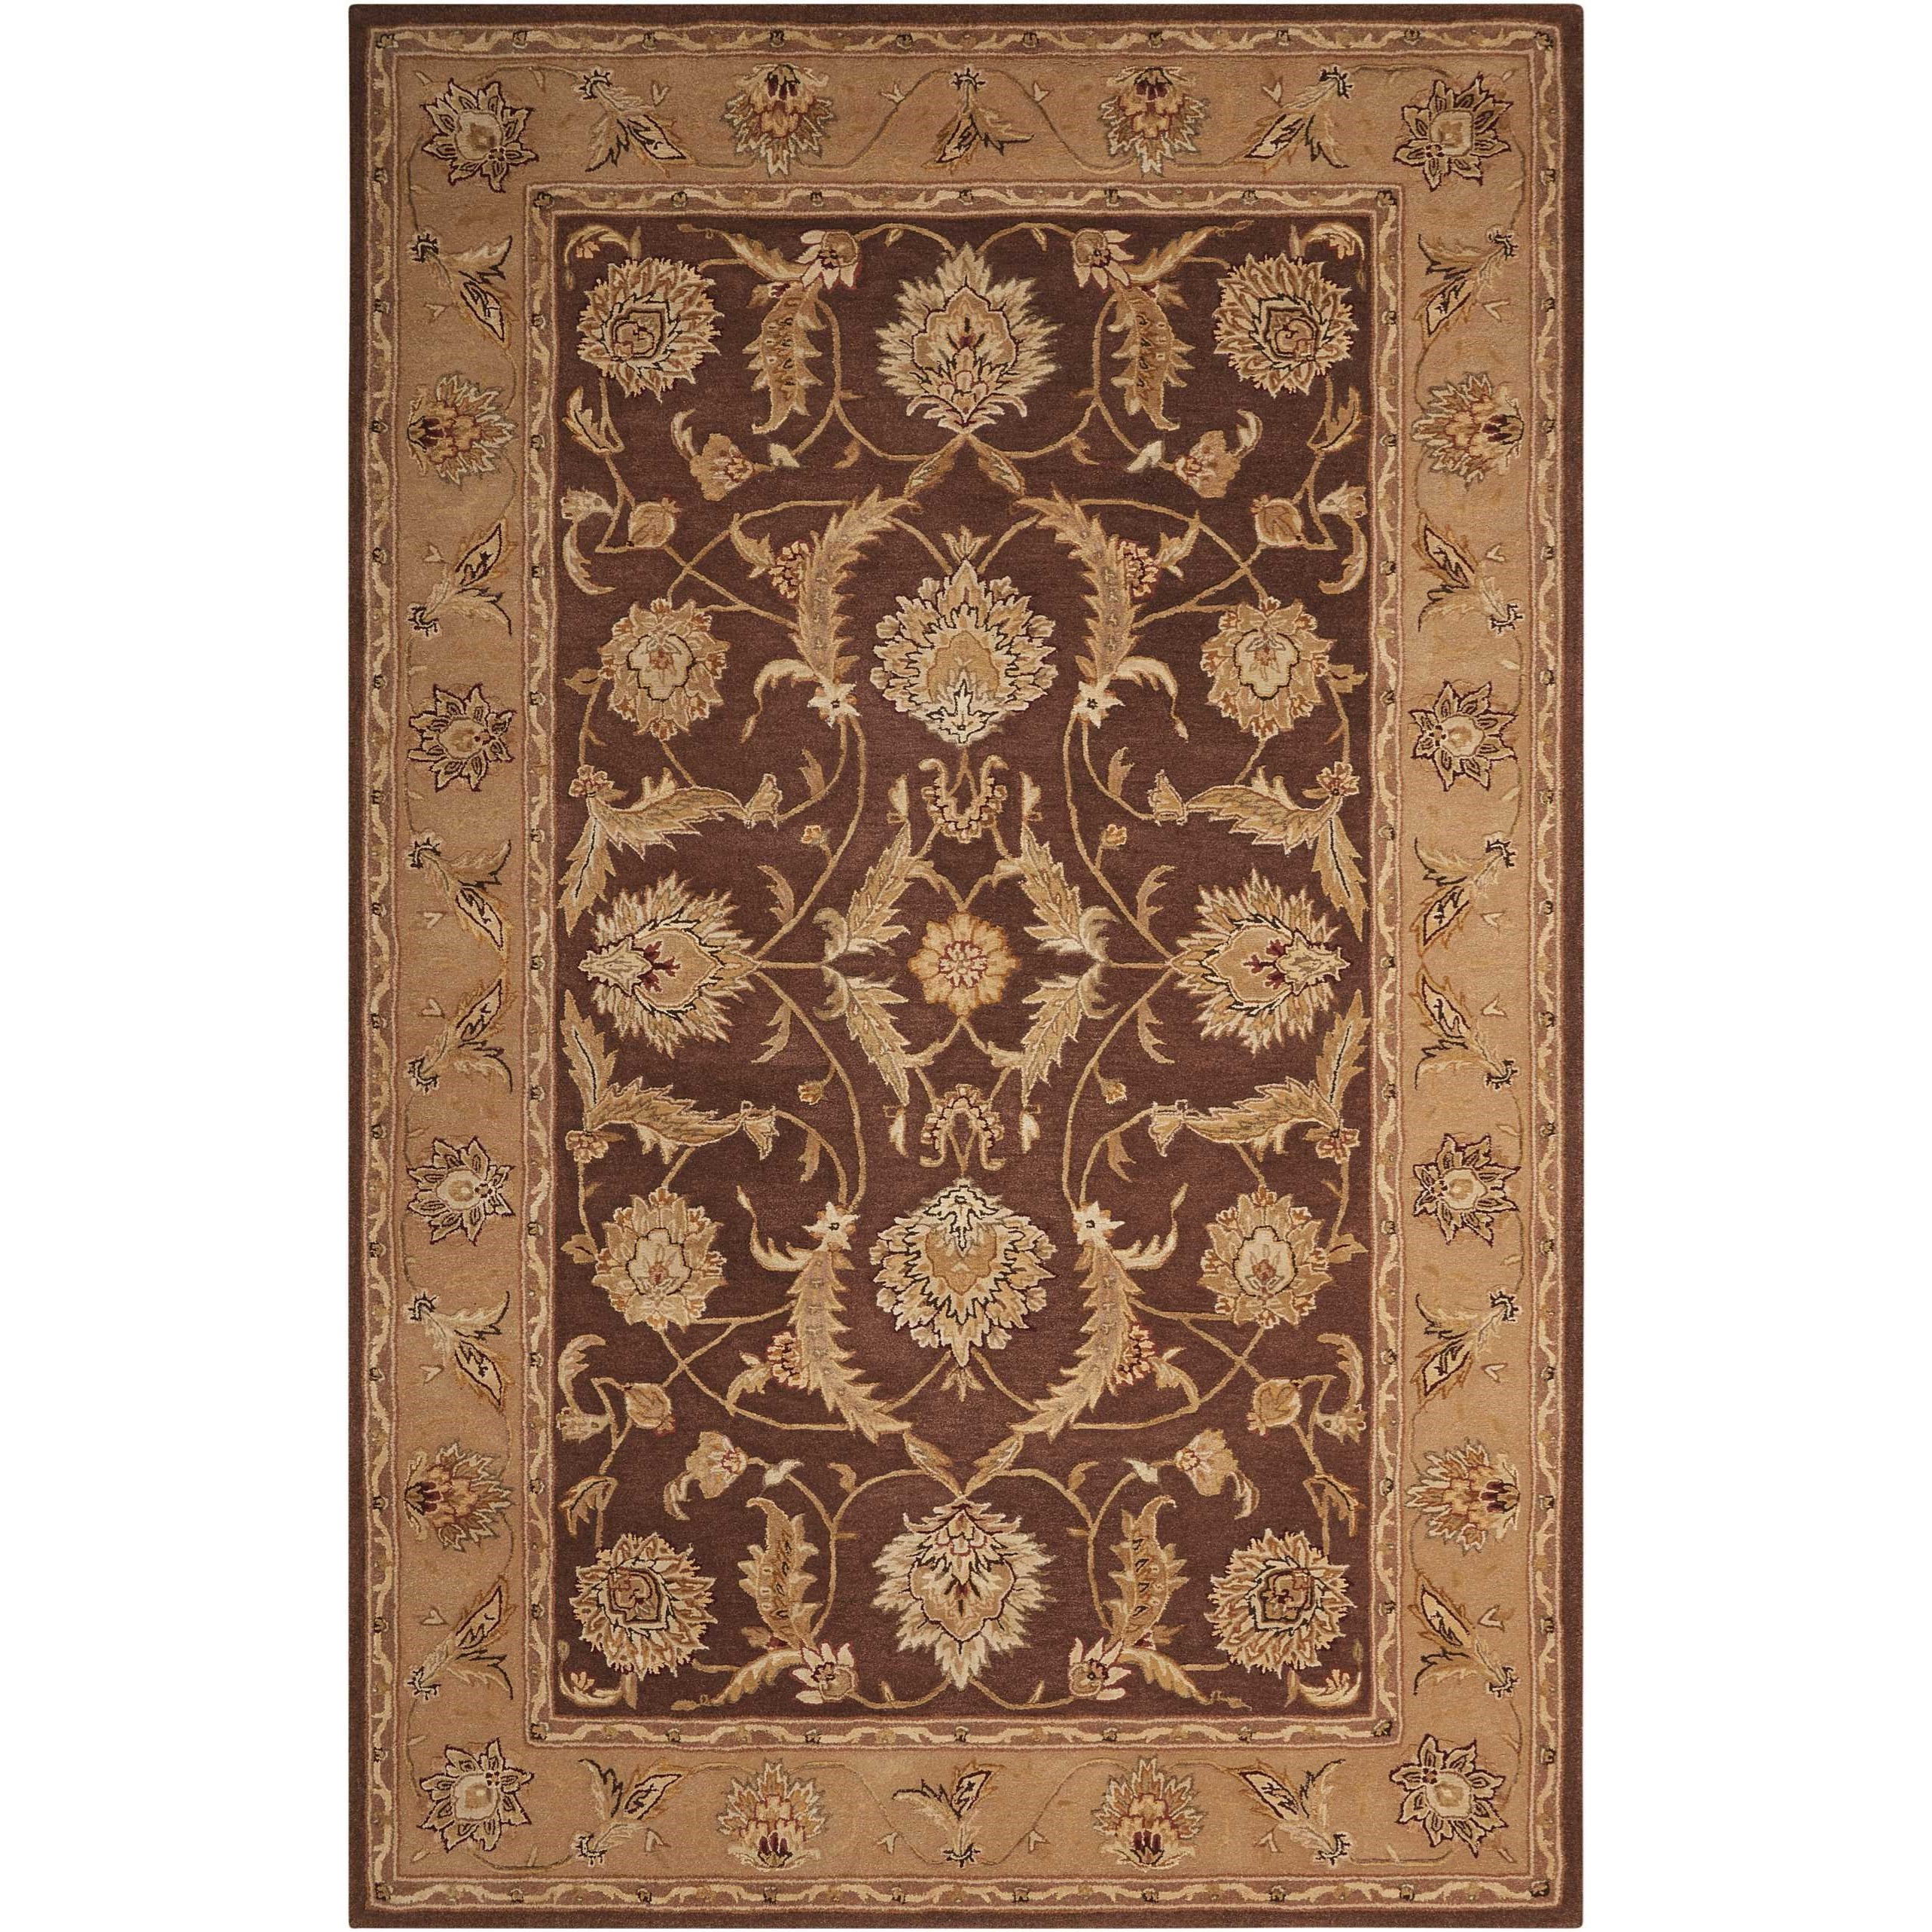 Nourison 3000 6' x 6' Brown Round Rug by Nourison at Home Collections Furniture